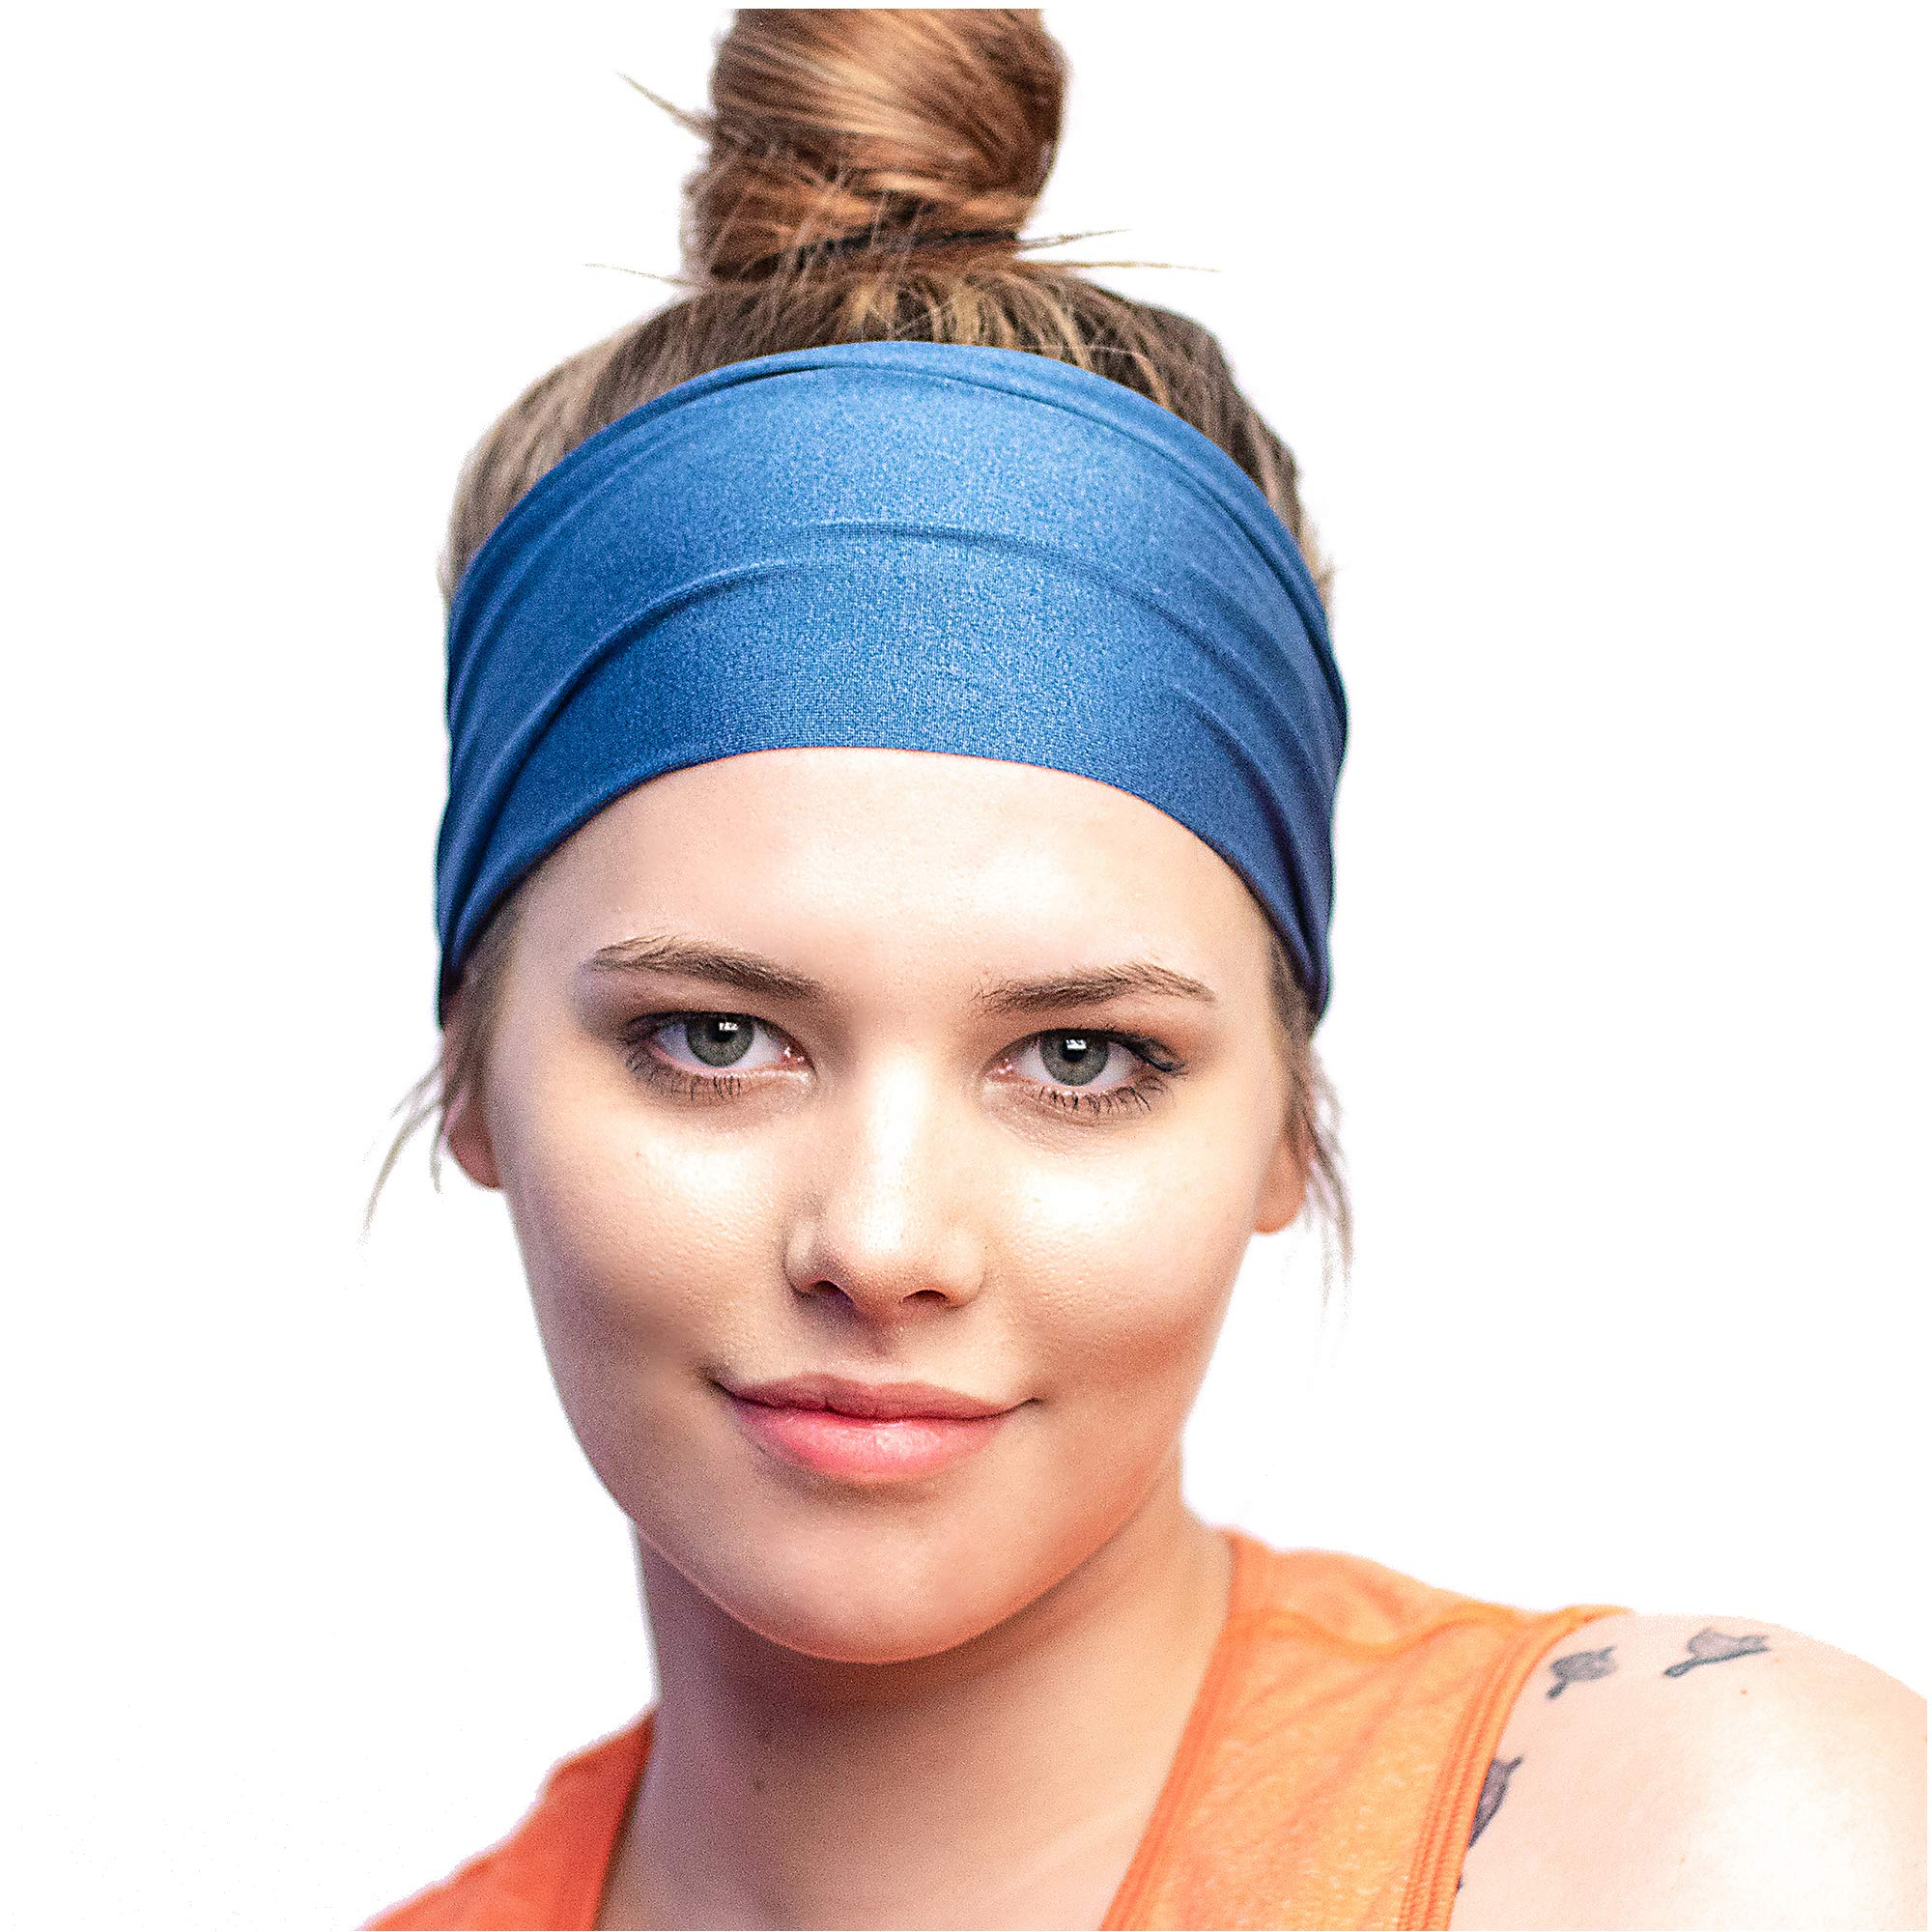 Red Dust Active Running Headband - The Perfect Sweatband for Athletic Workouts, Sports, Yoga - Grey Bandana - Designed for Women Borrowed by Men by Red Dust Active (Image #1)